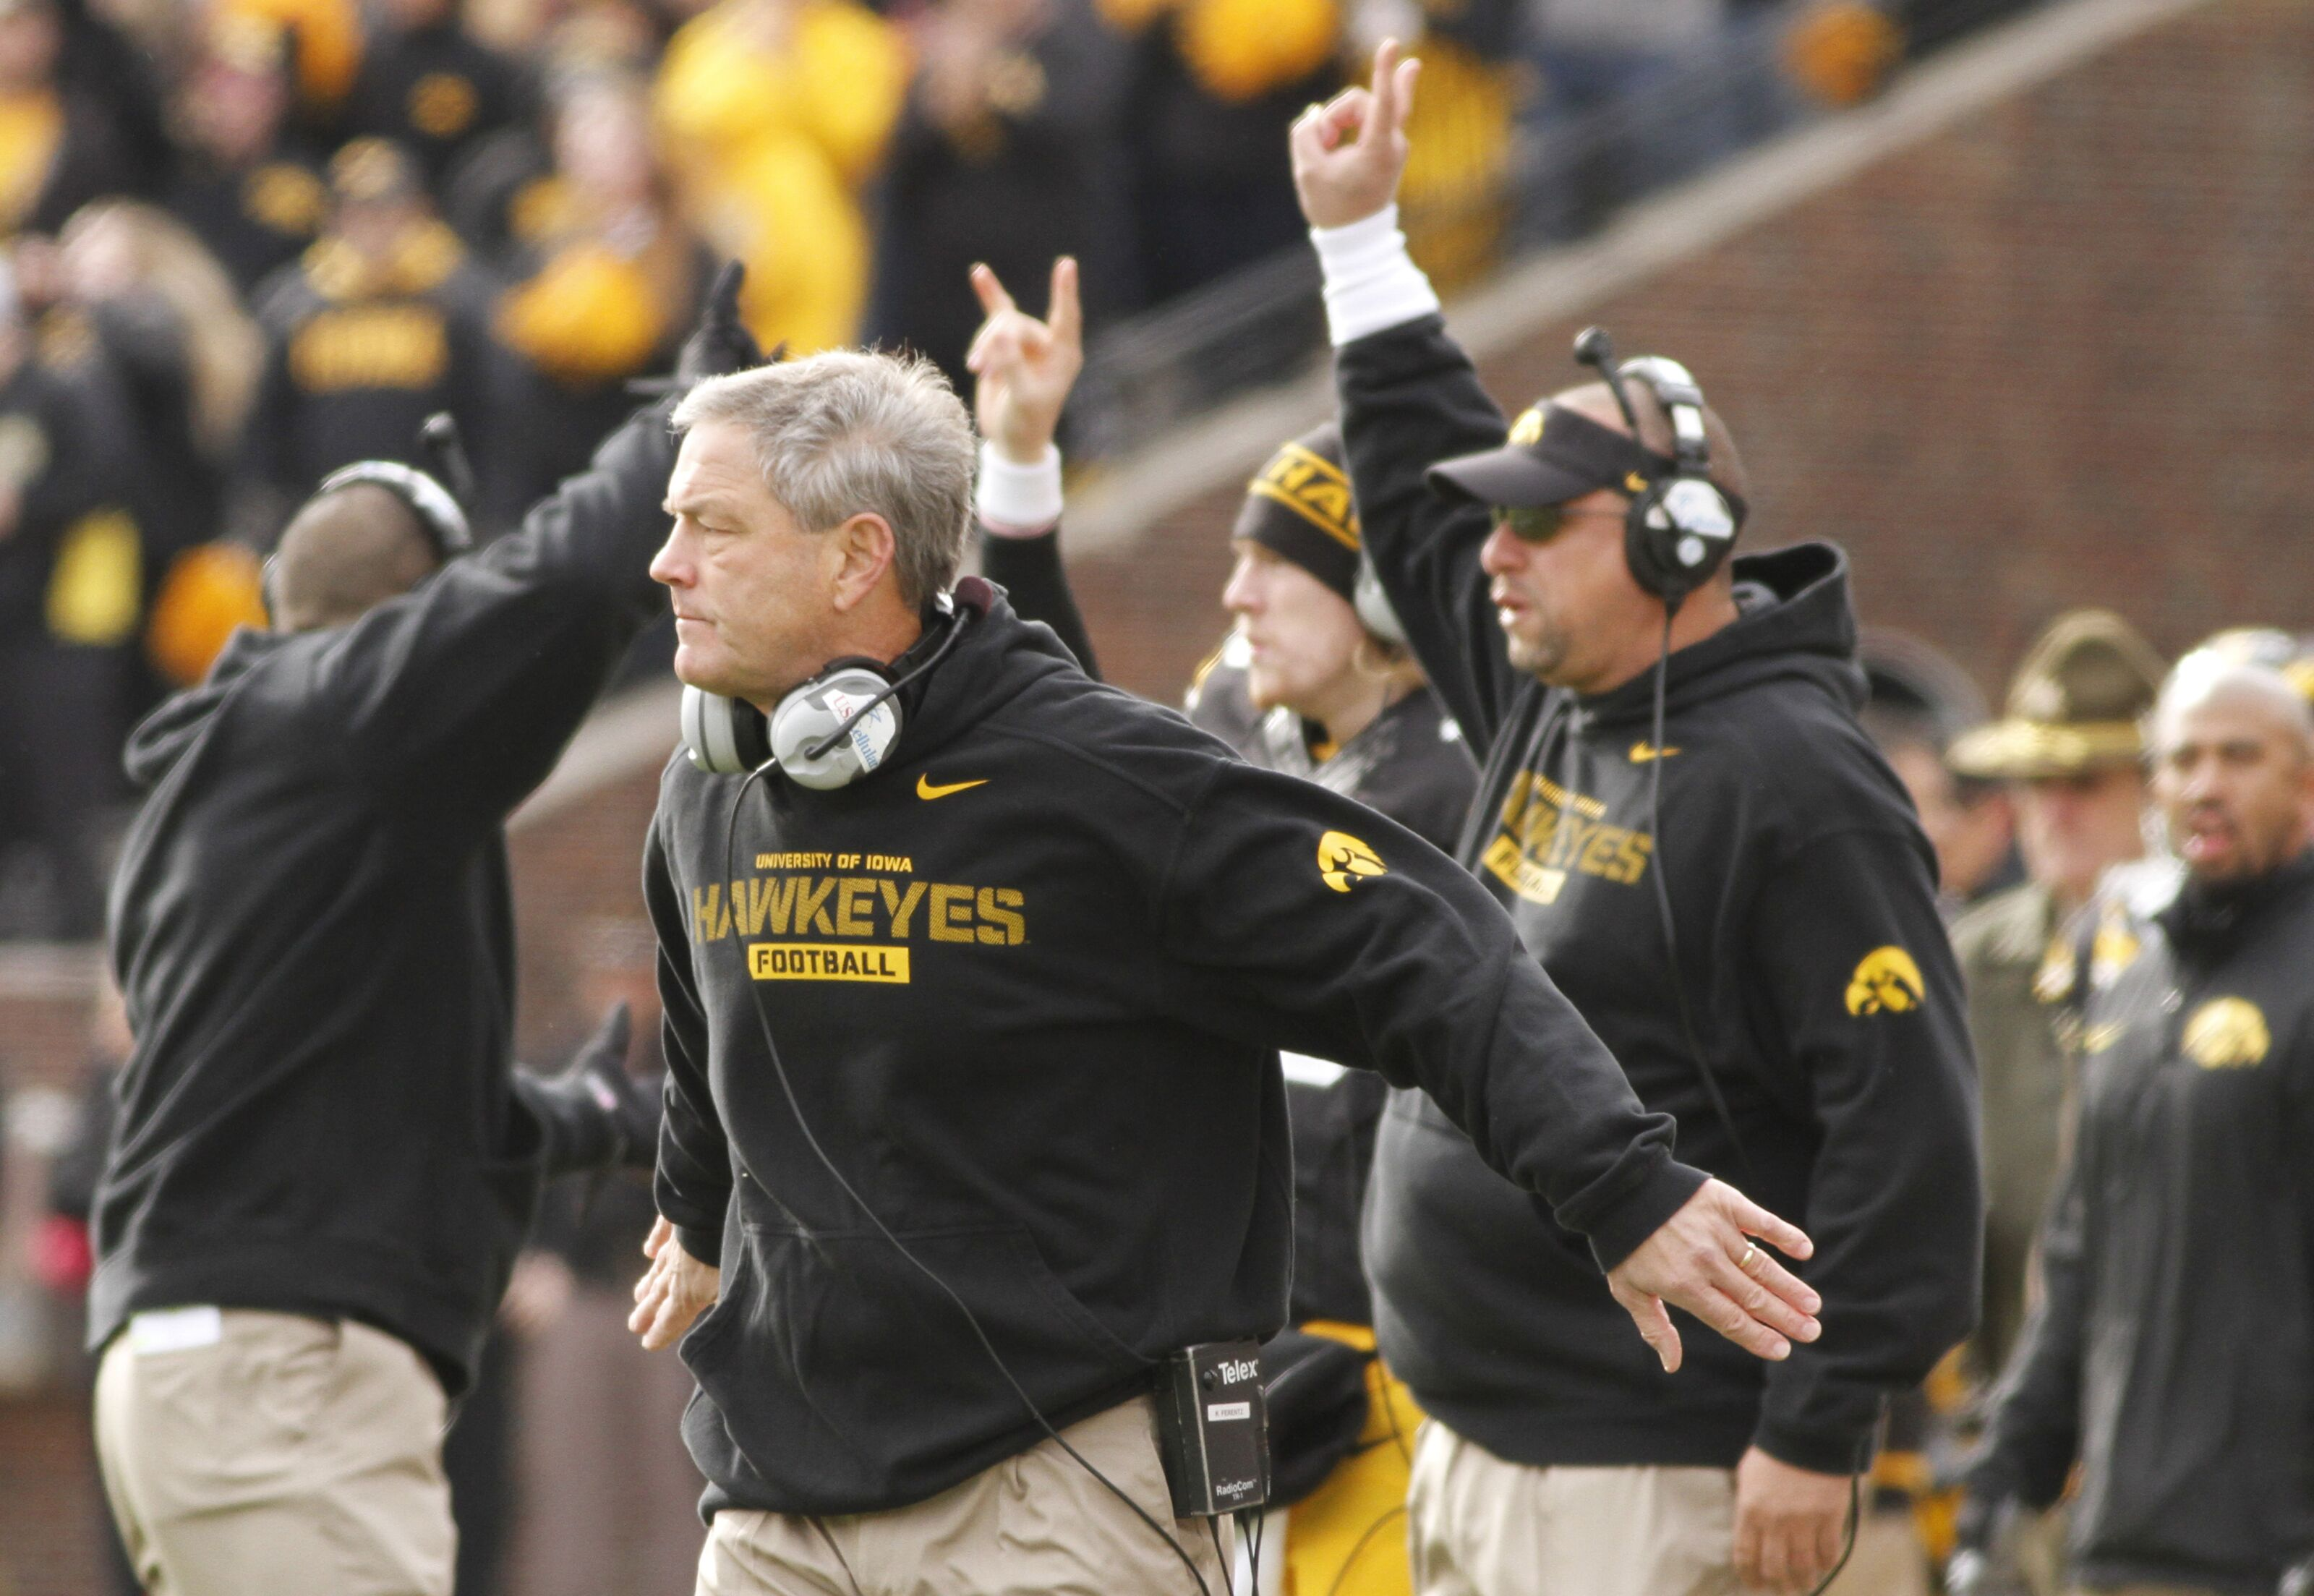 Iowa football: Pair of 2020 OL recruits moved up to 4-star ranking